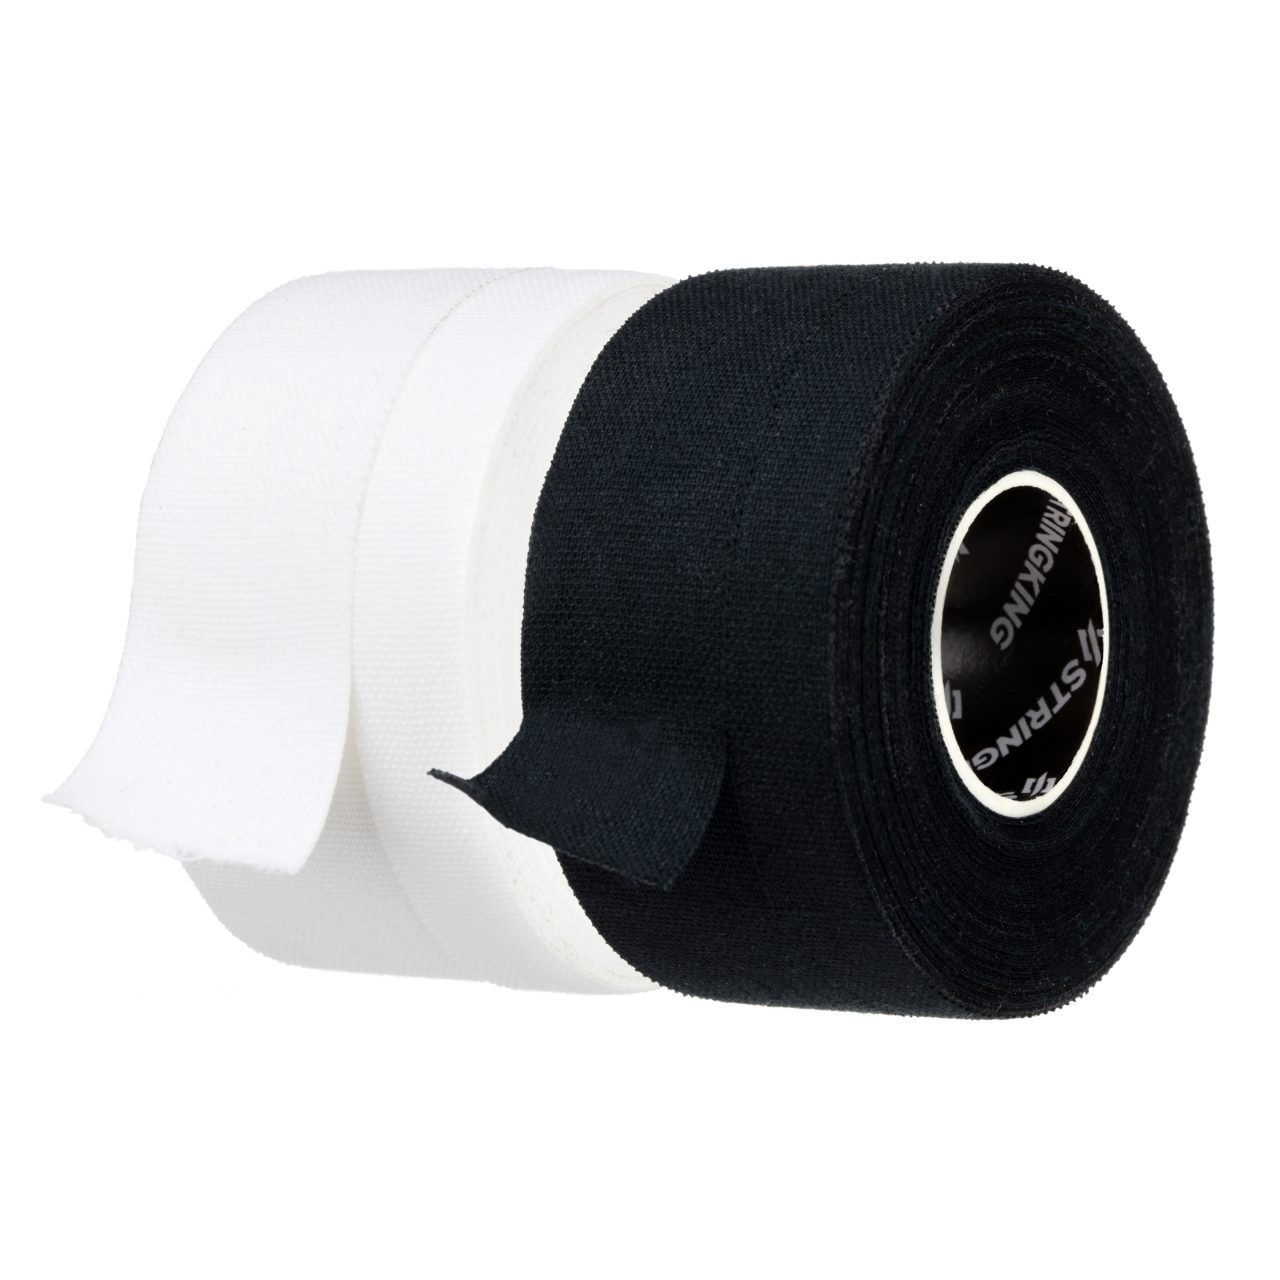 StringKing Pre Cut Lacrosse Tape White Black